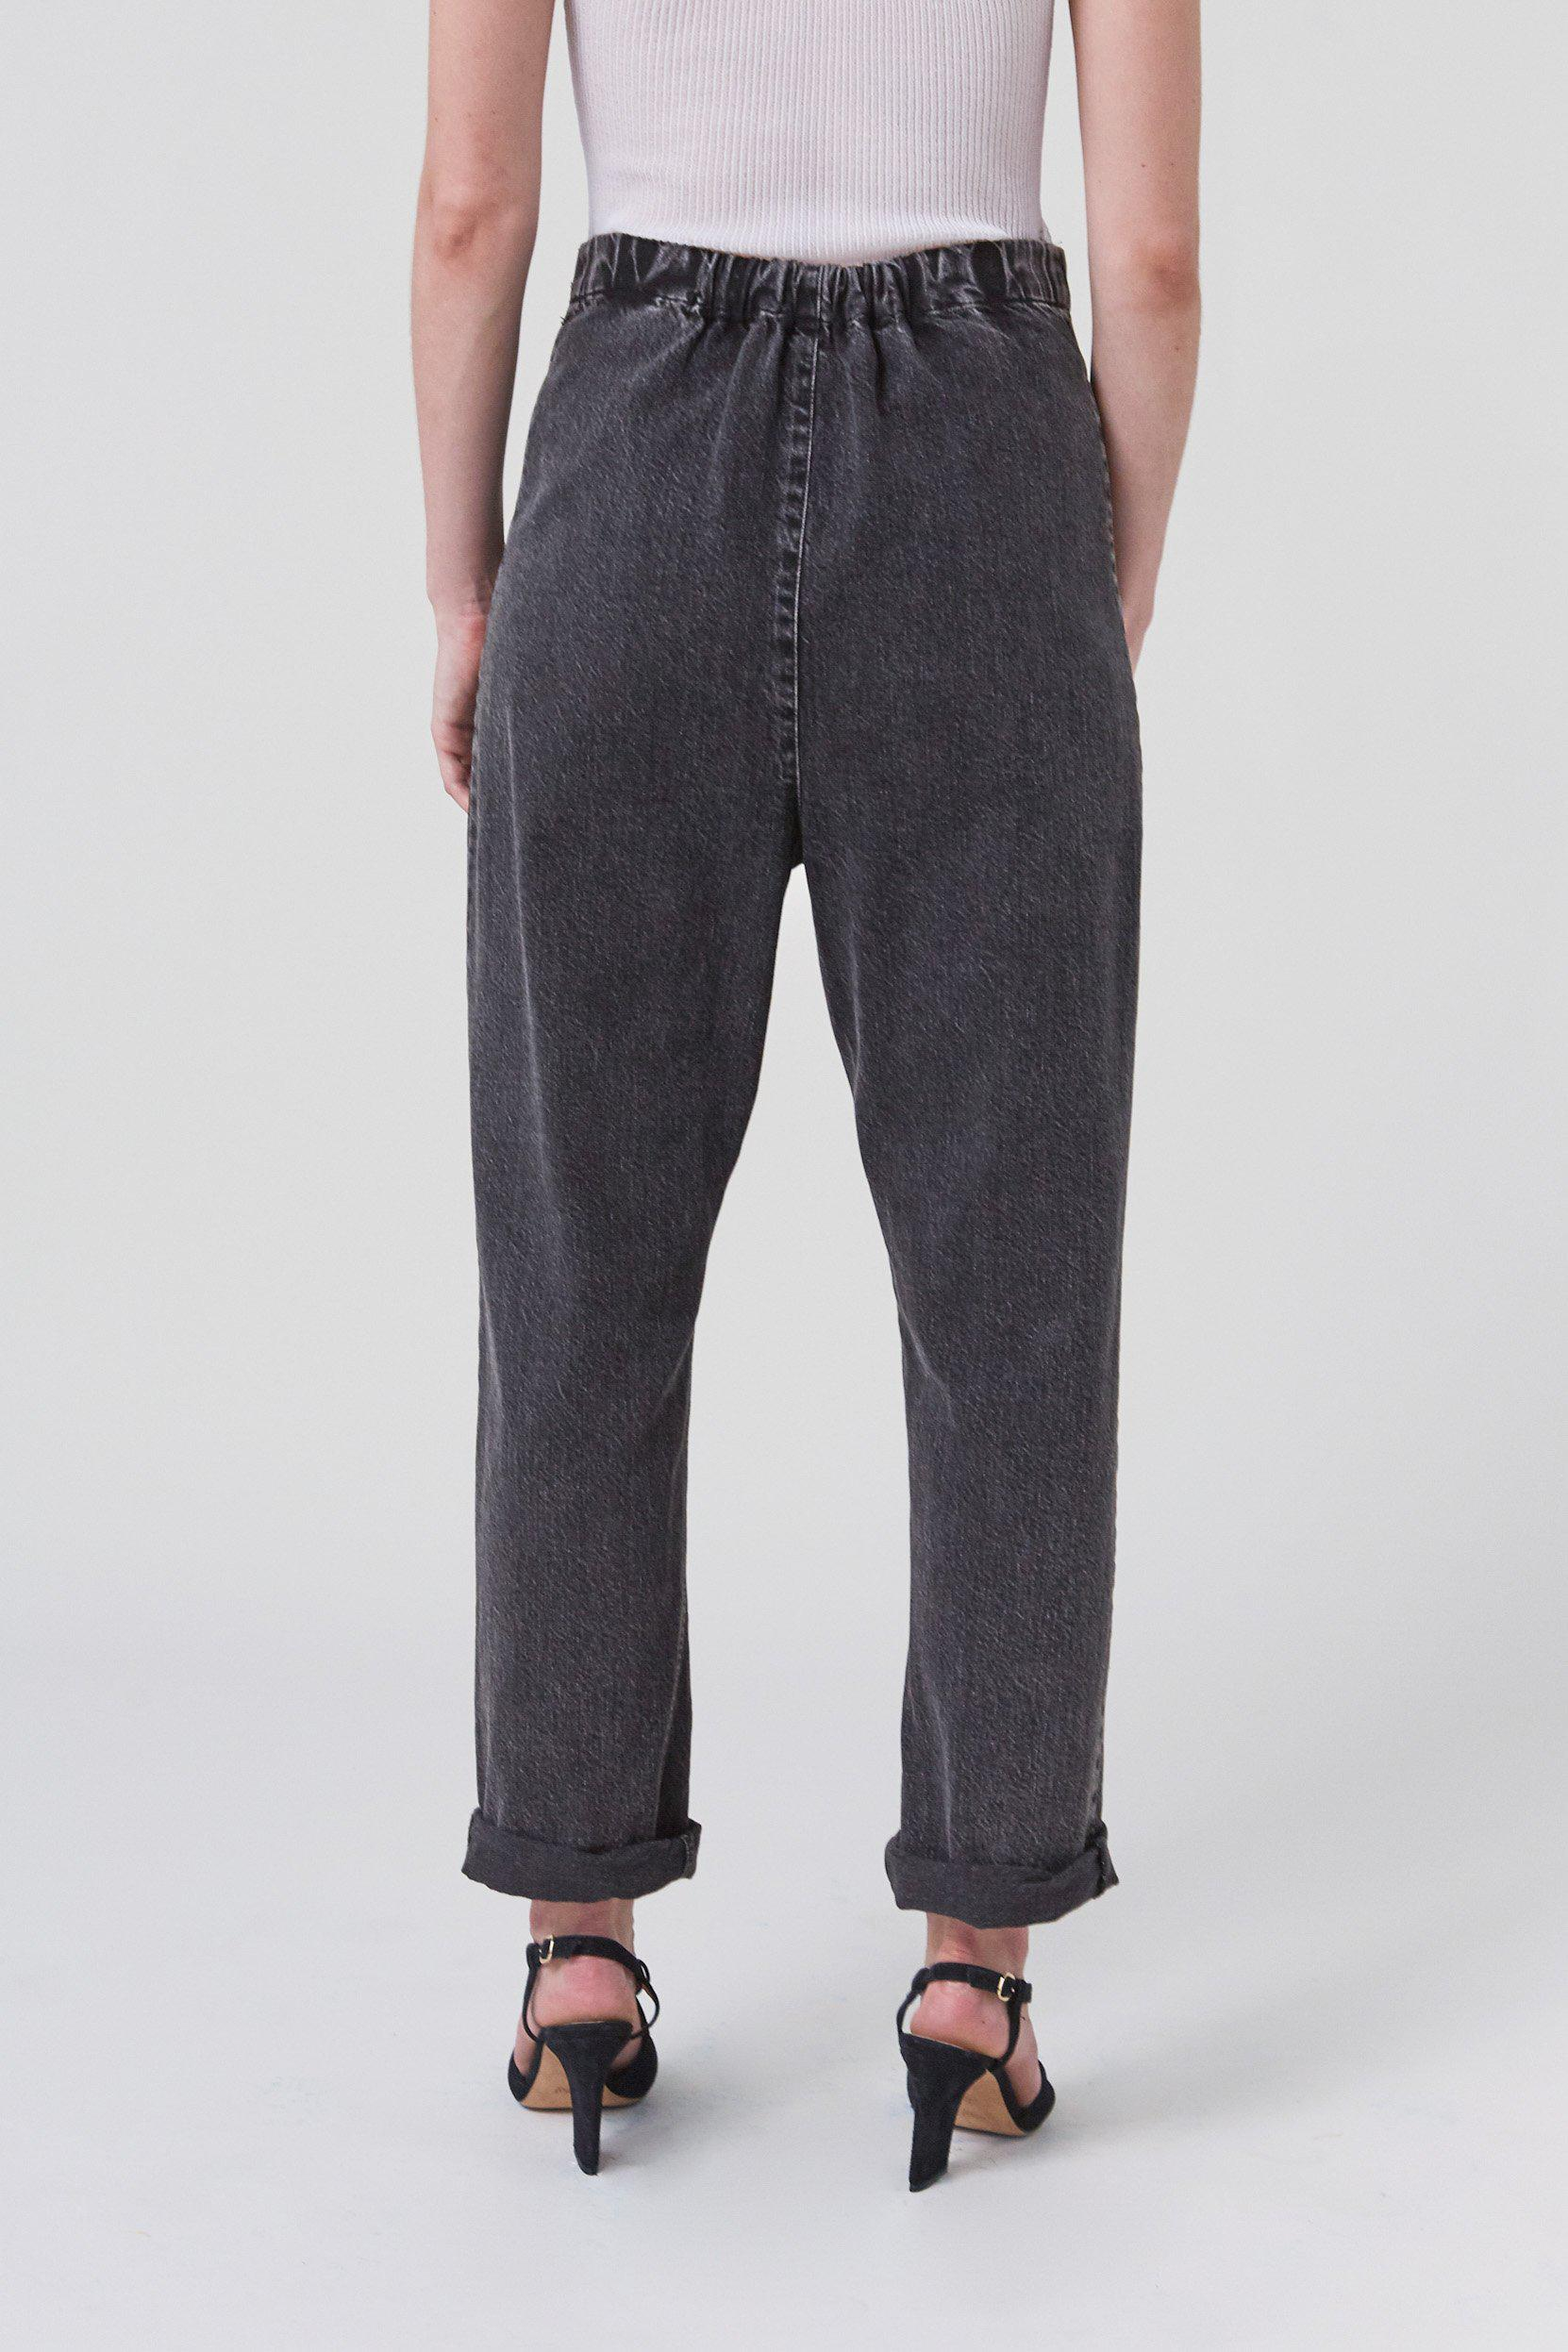 Barrie Pant 3